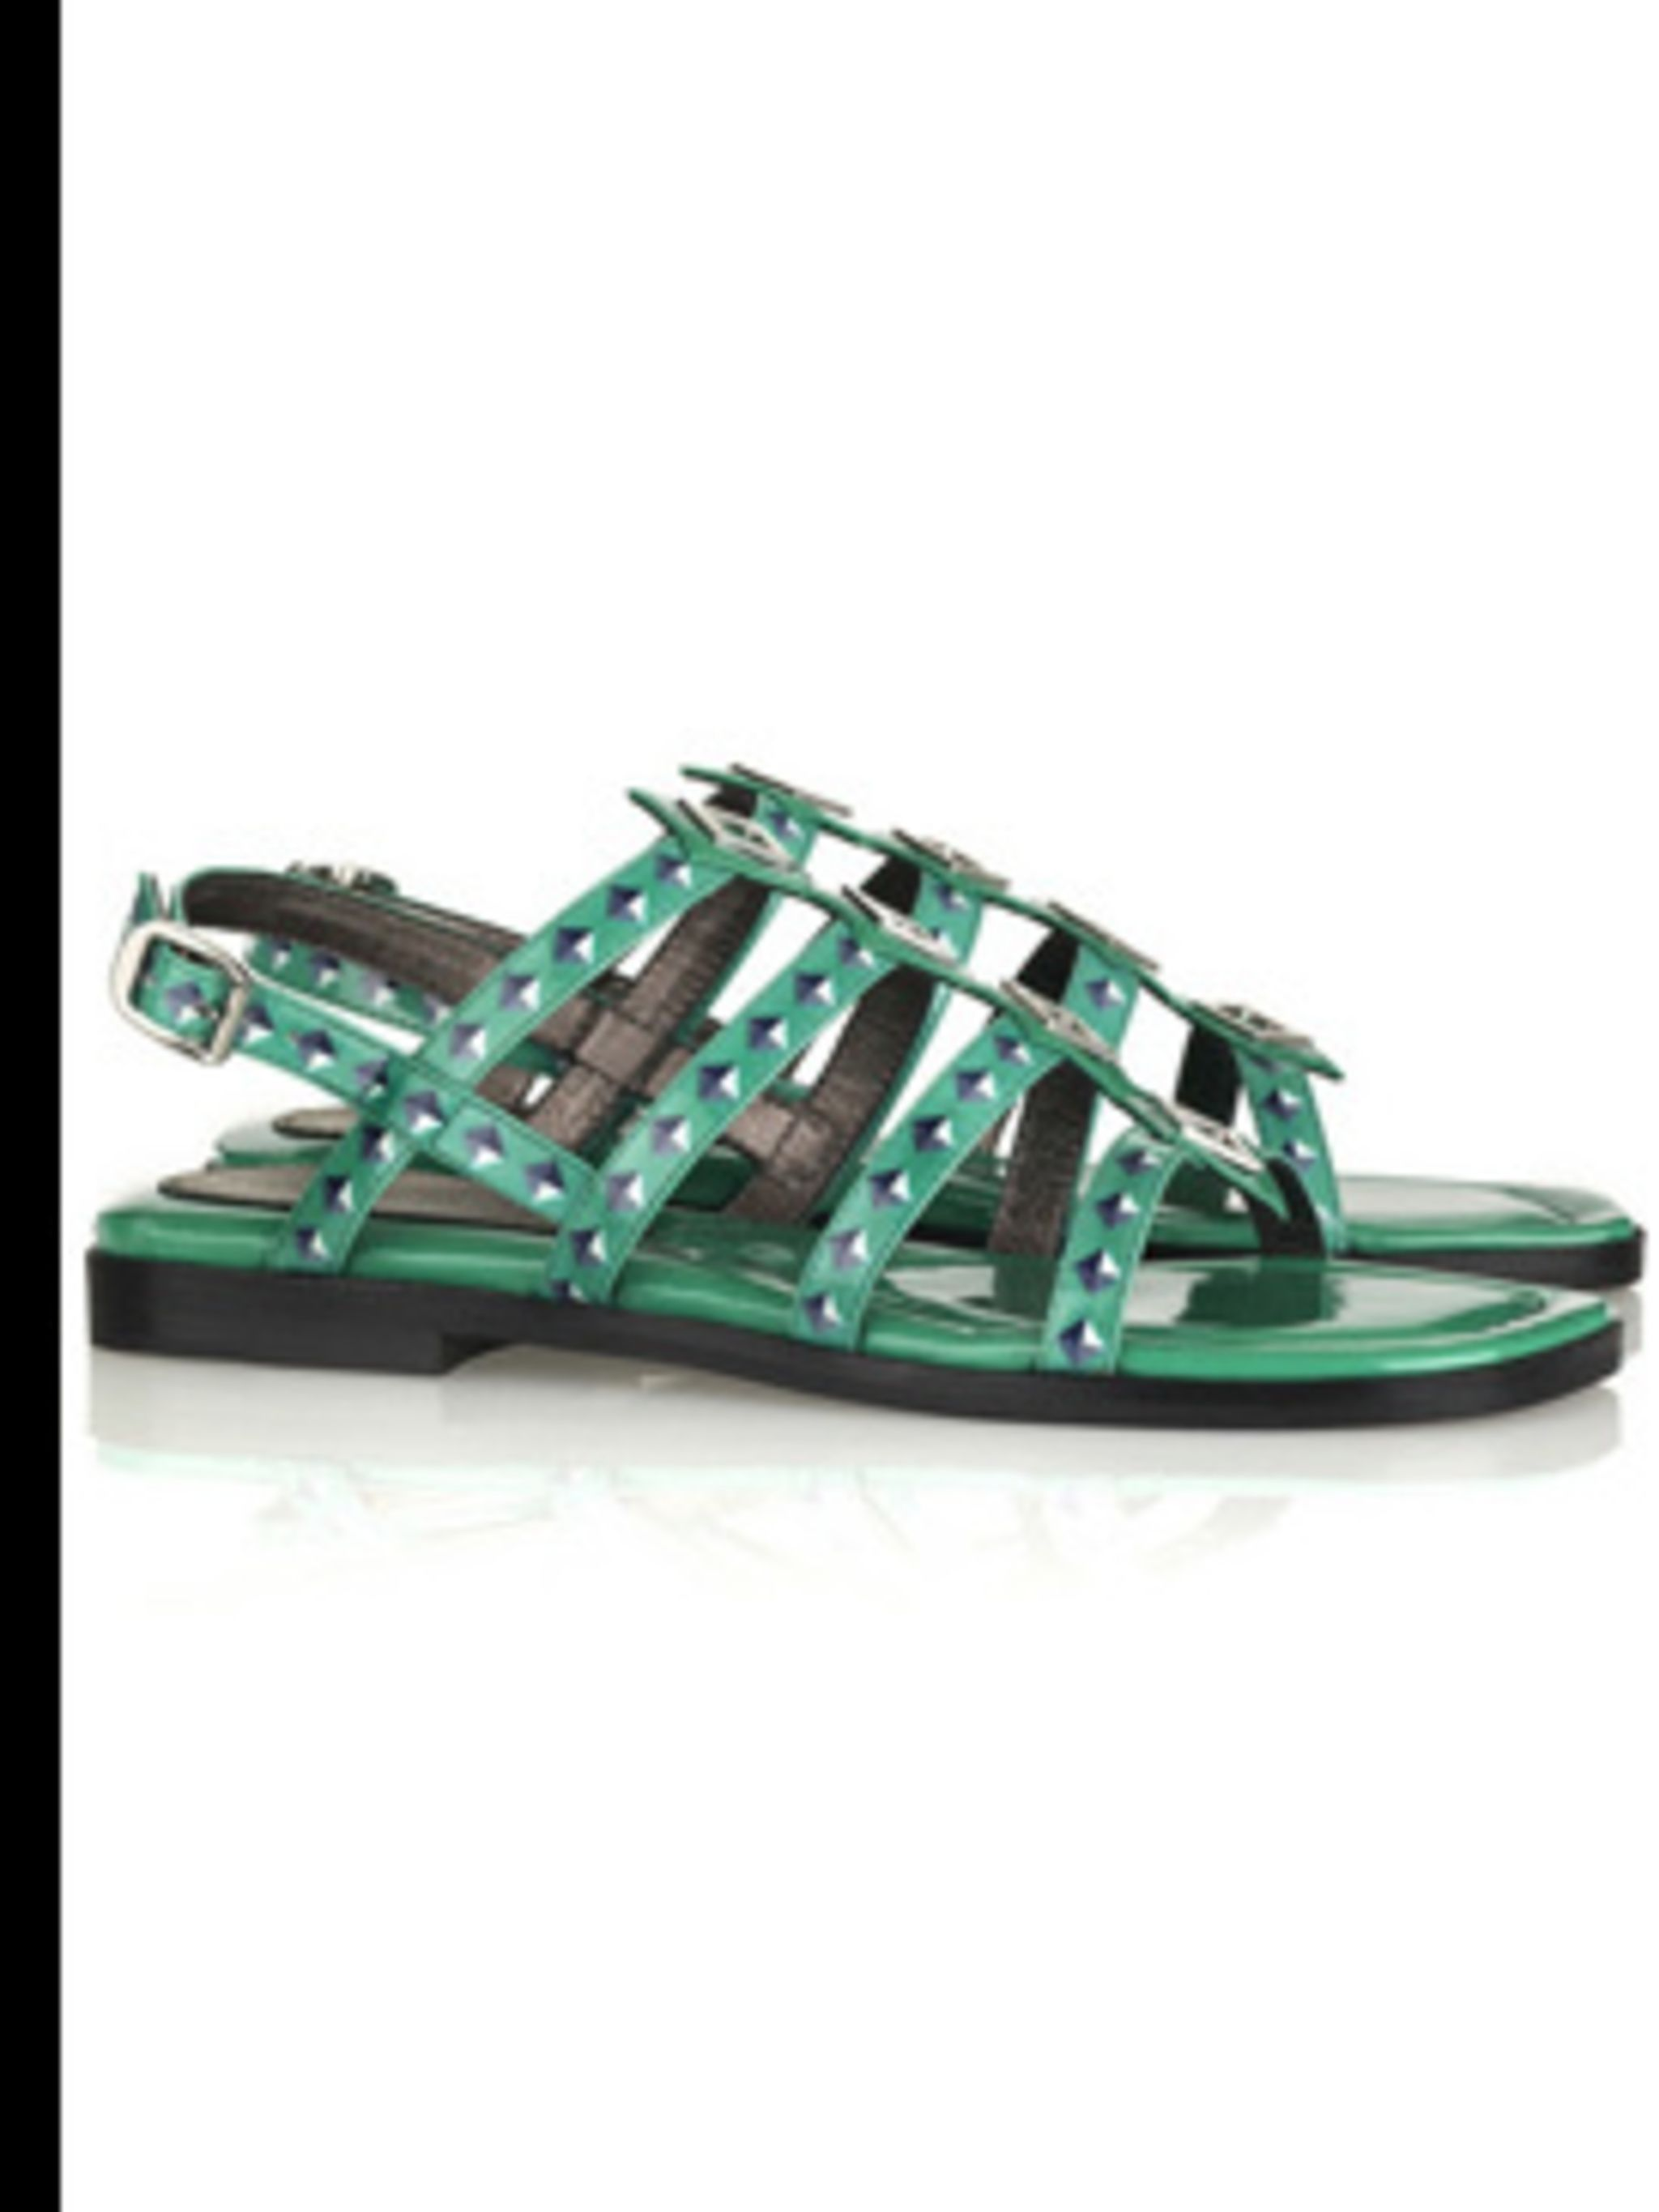 """<p>Green sandals, £259, by Marc by Marc Jacobs at <a href=""""http://www.net-a-porter.com/"""">www.net-a-porter.com</a></p>"""